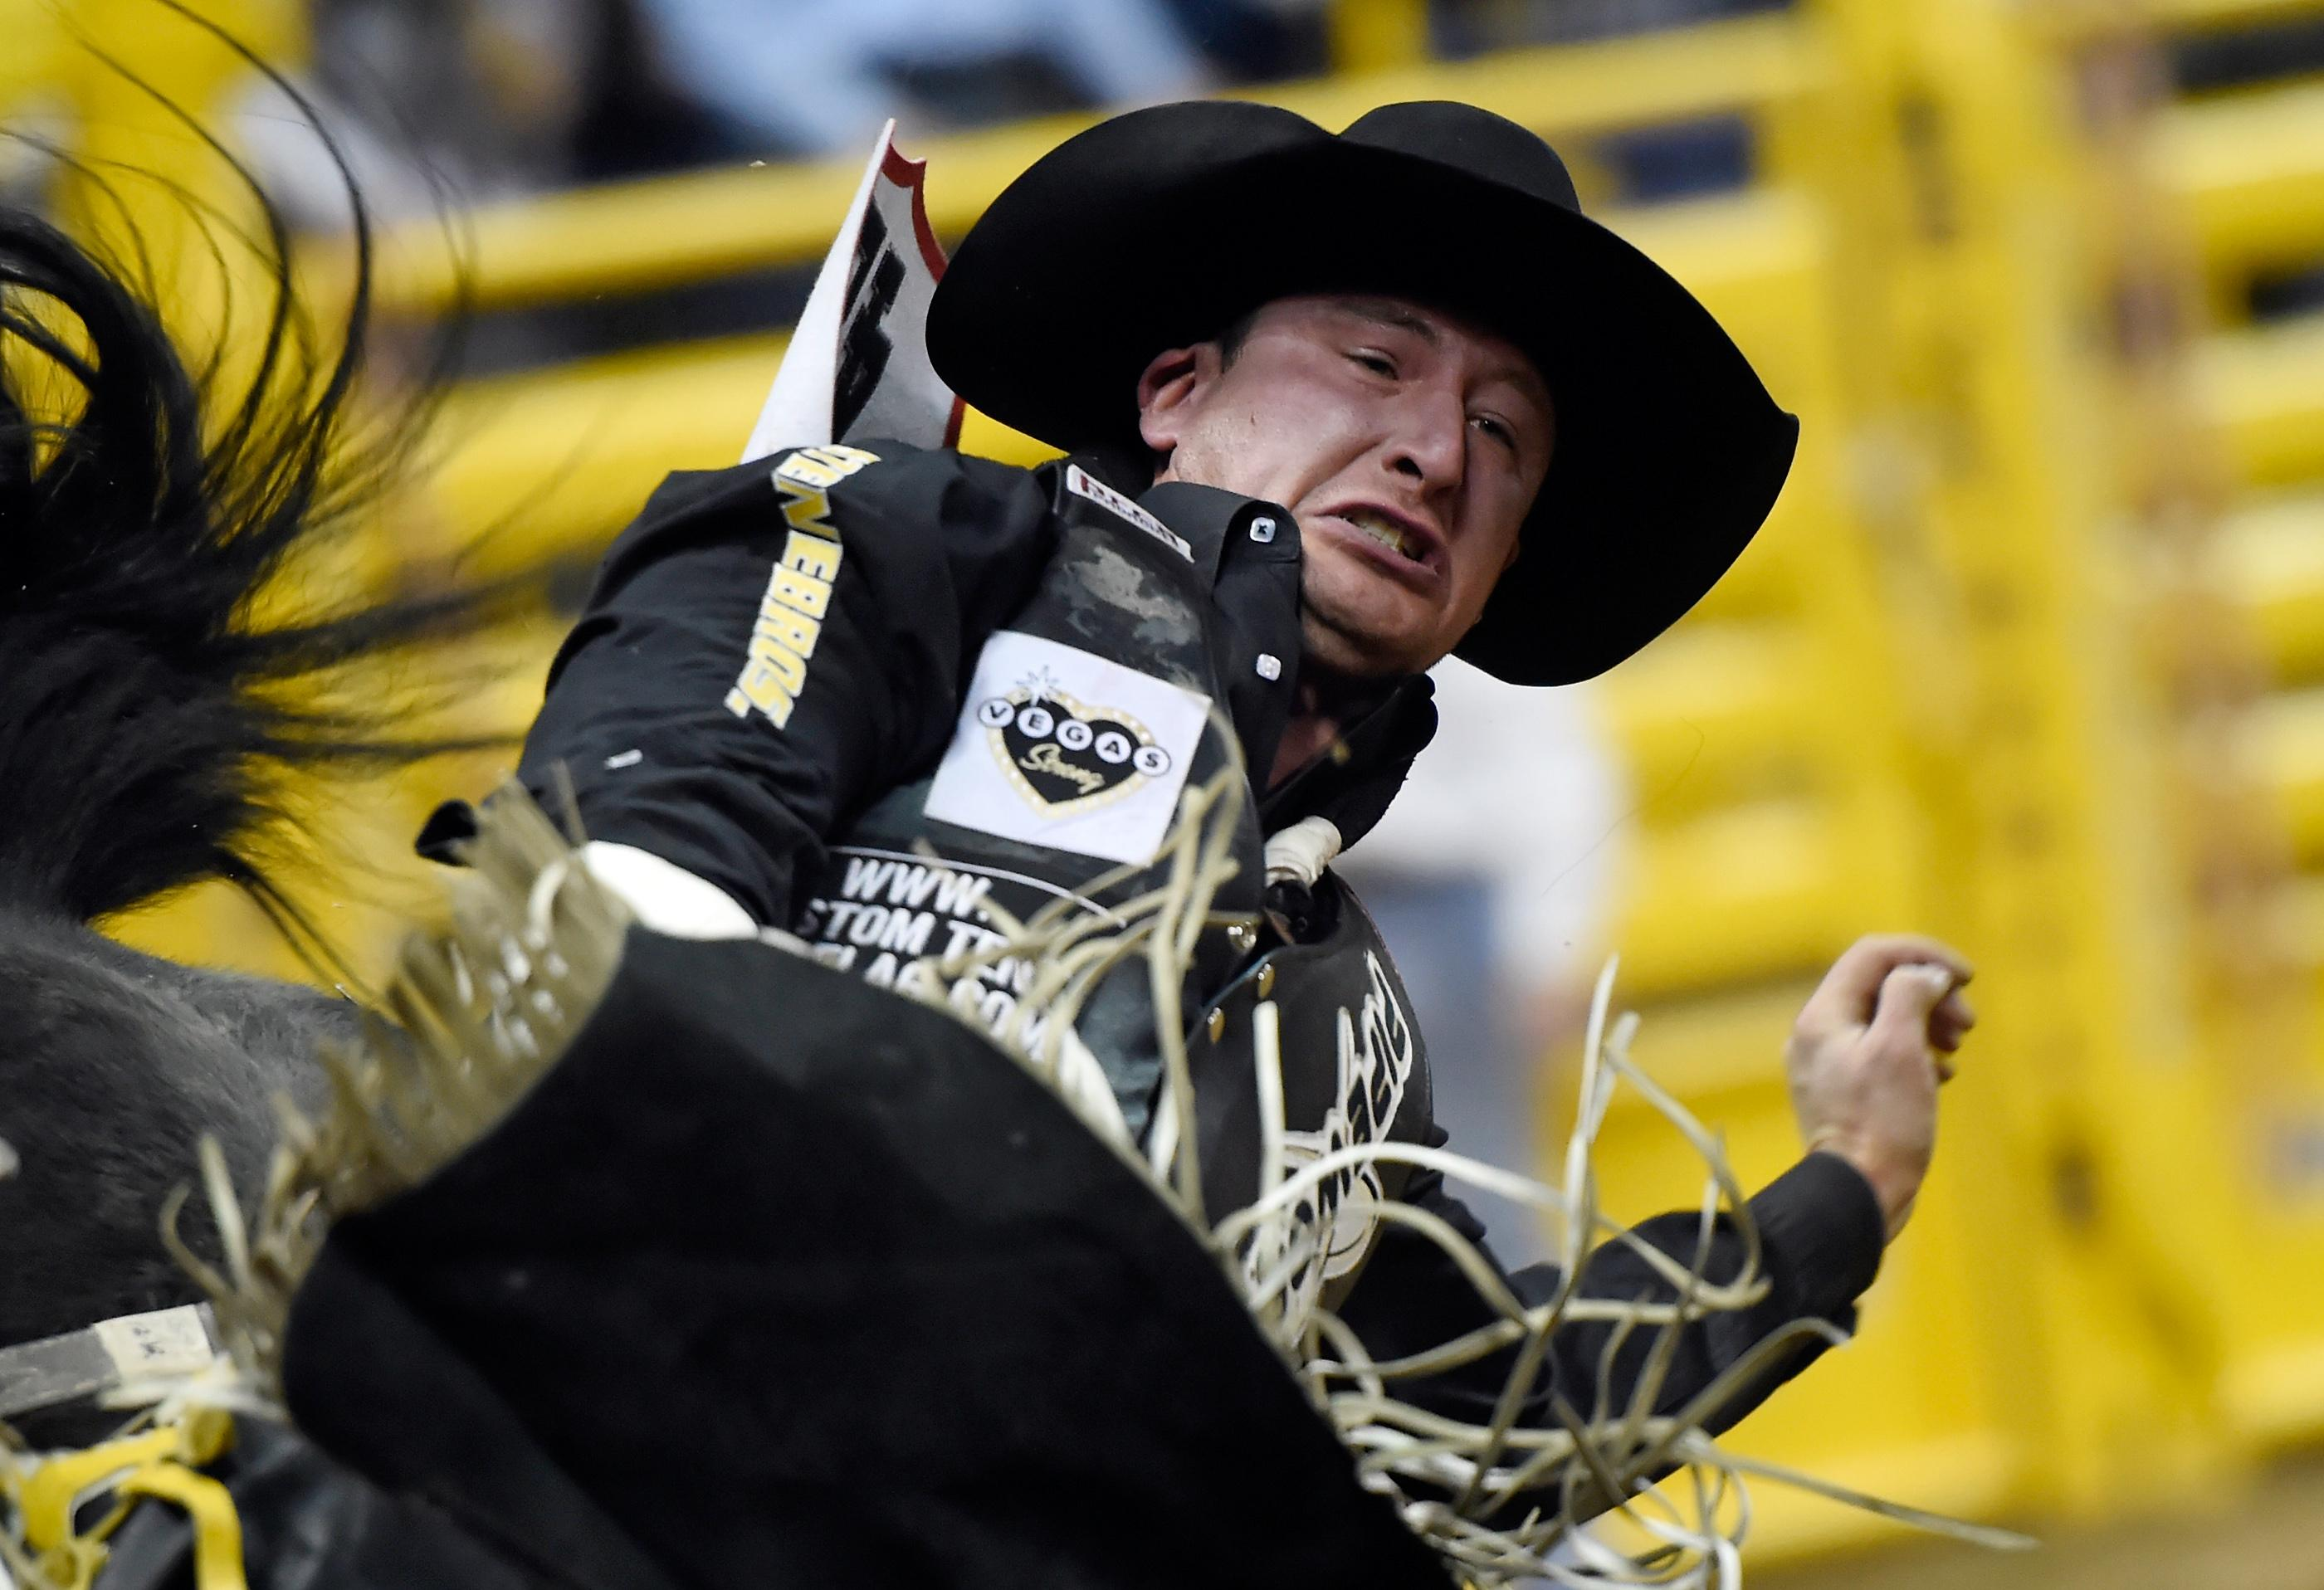 Jake Vold from Ponoka, Alberta, Canada, competes in bareback riding during the seventh go-round of the National Finals Rodeo Wednesday, Dec. 13, 2017, in Las Vegas. CREDIT: David Becker/Las Vegas News Bureau